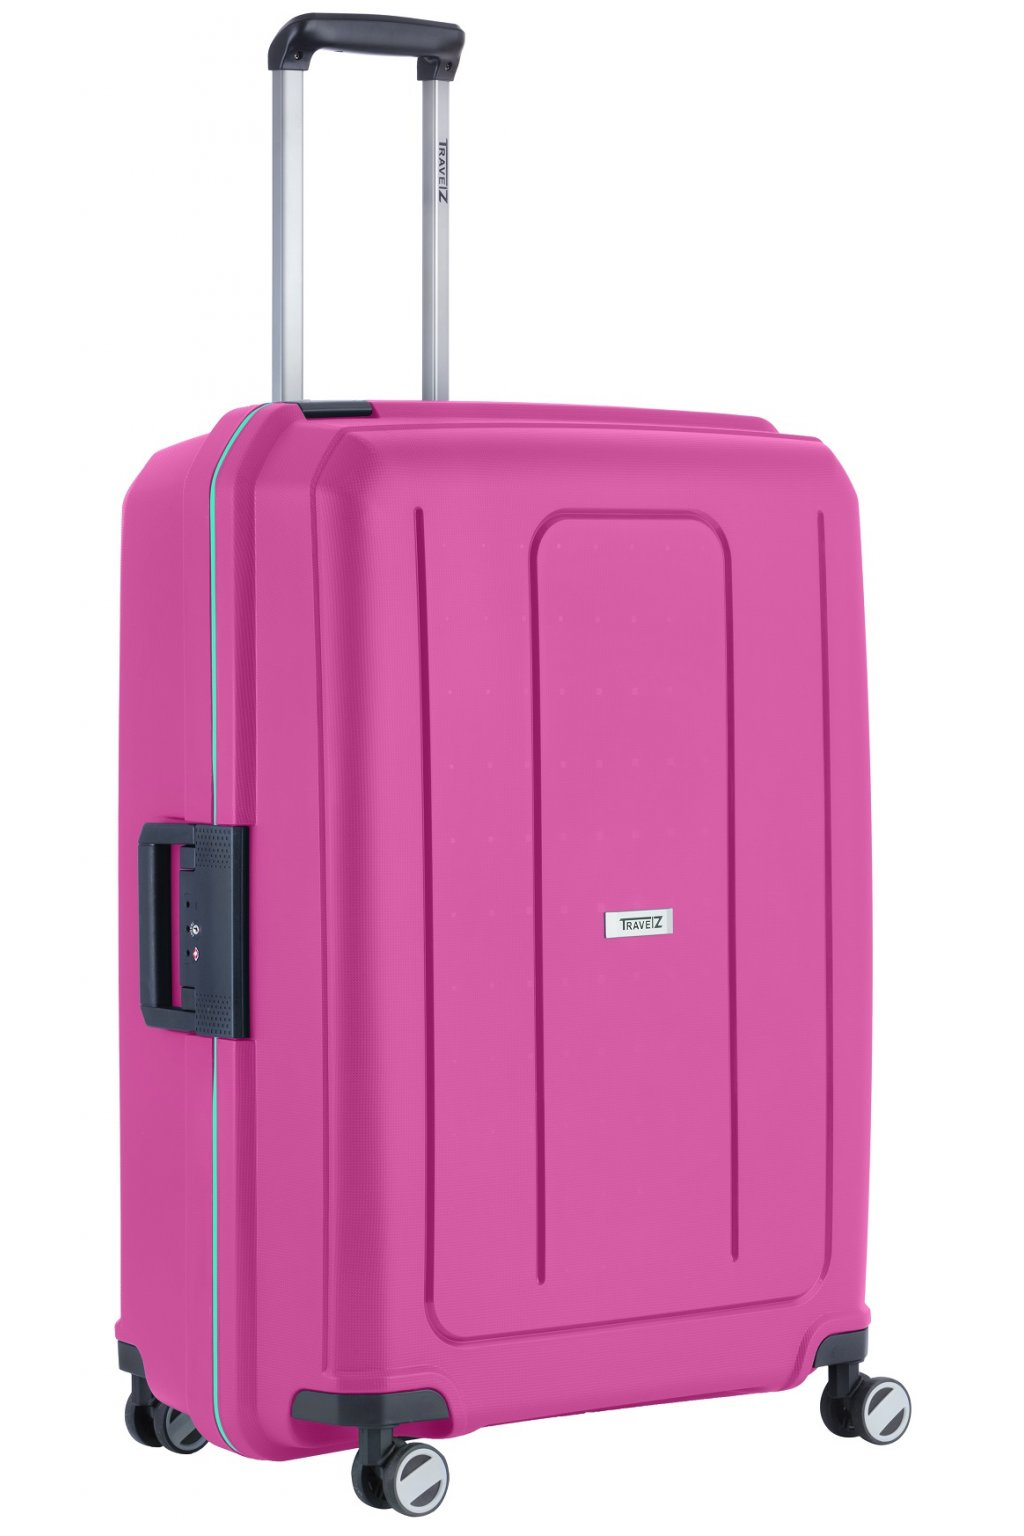 kufrland travelz locker pink (1)